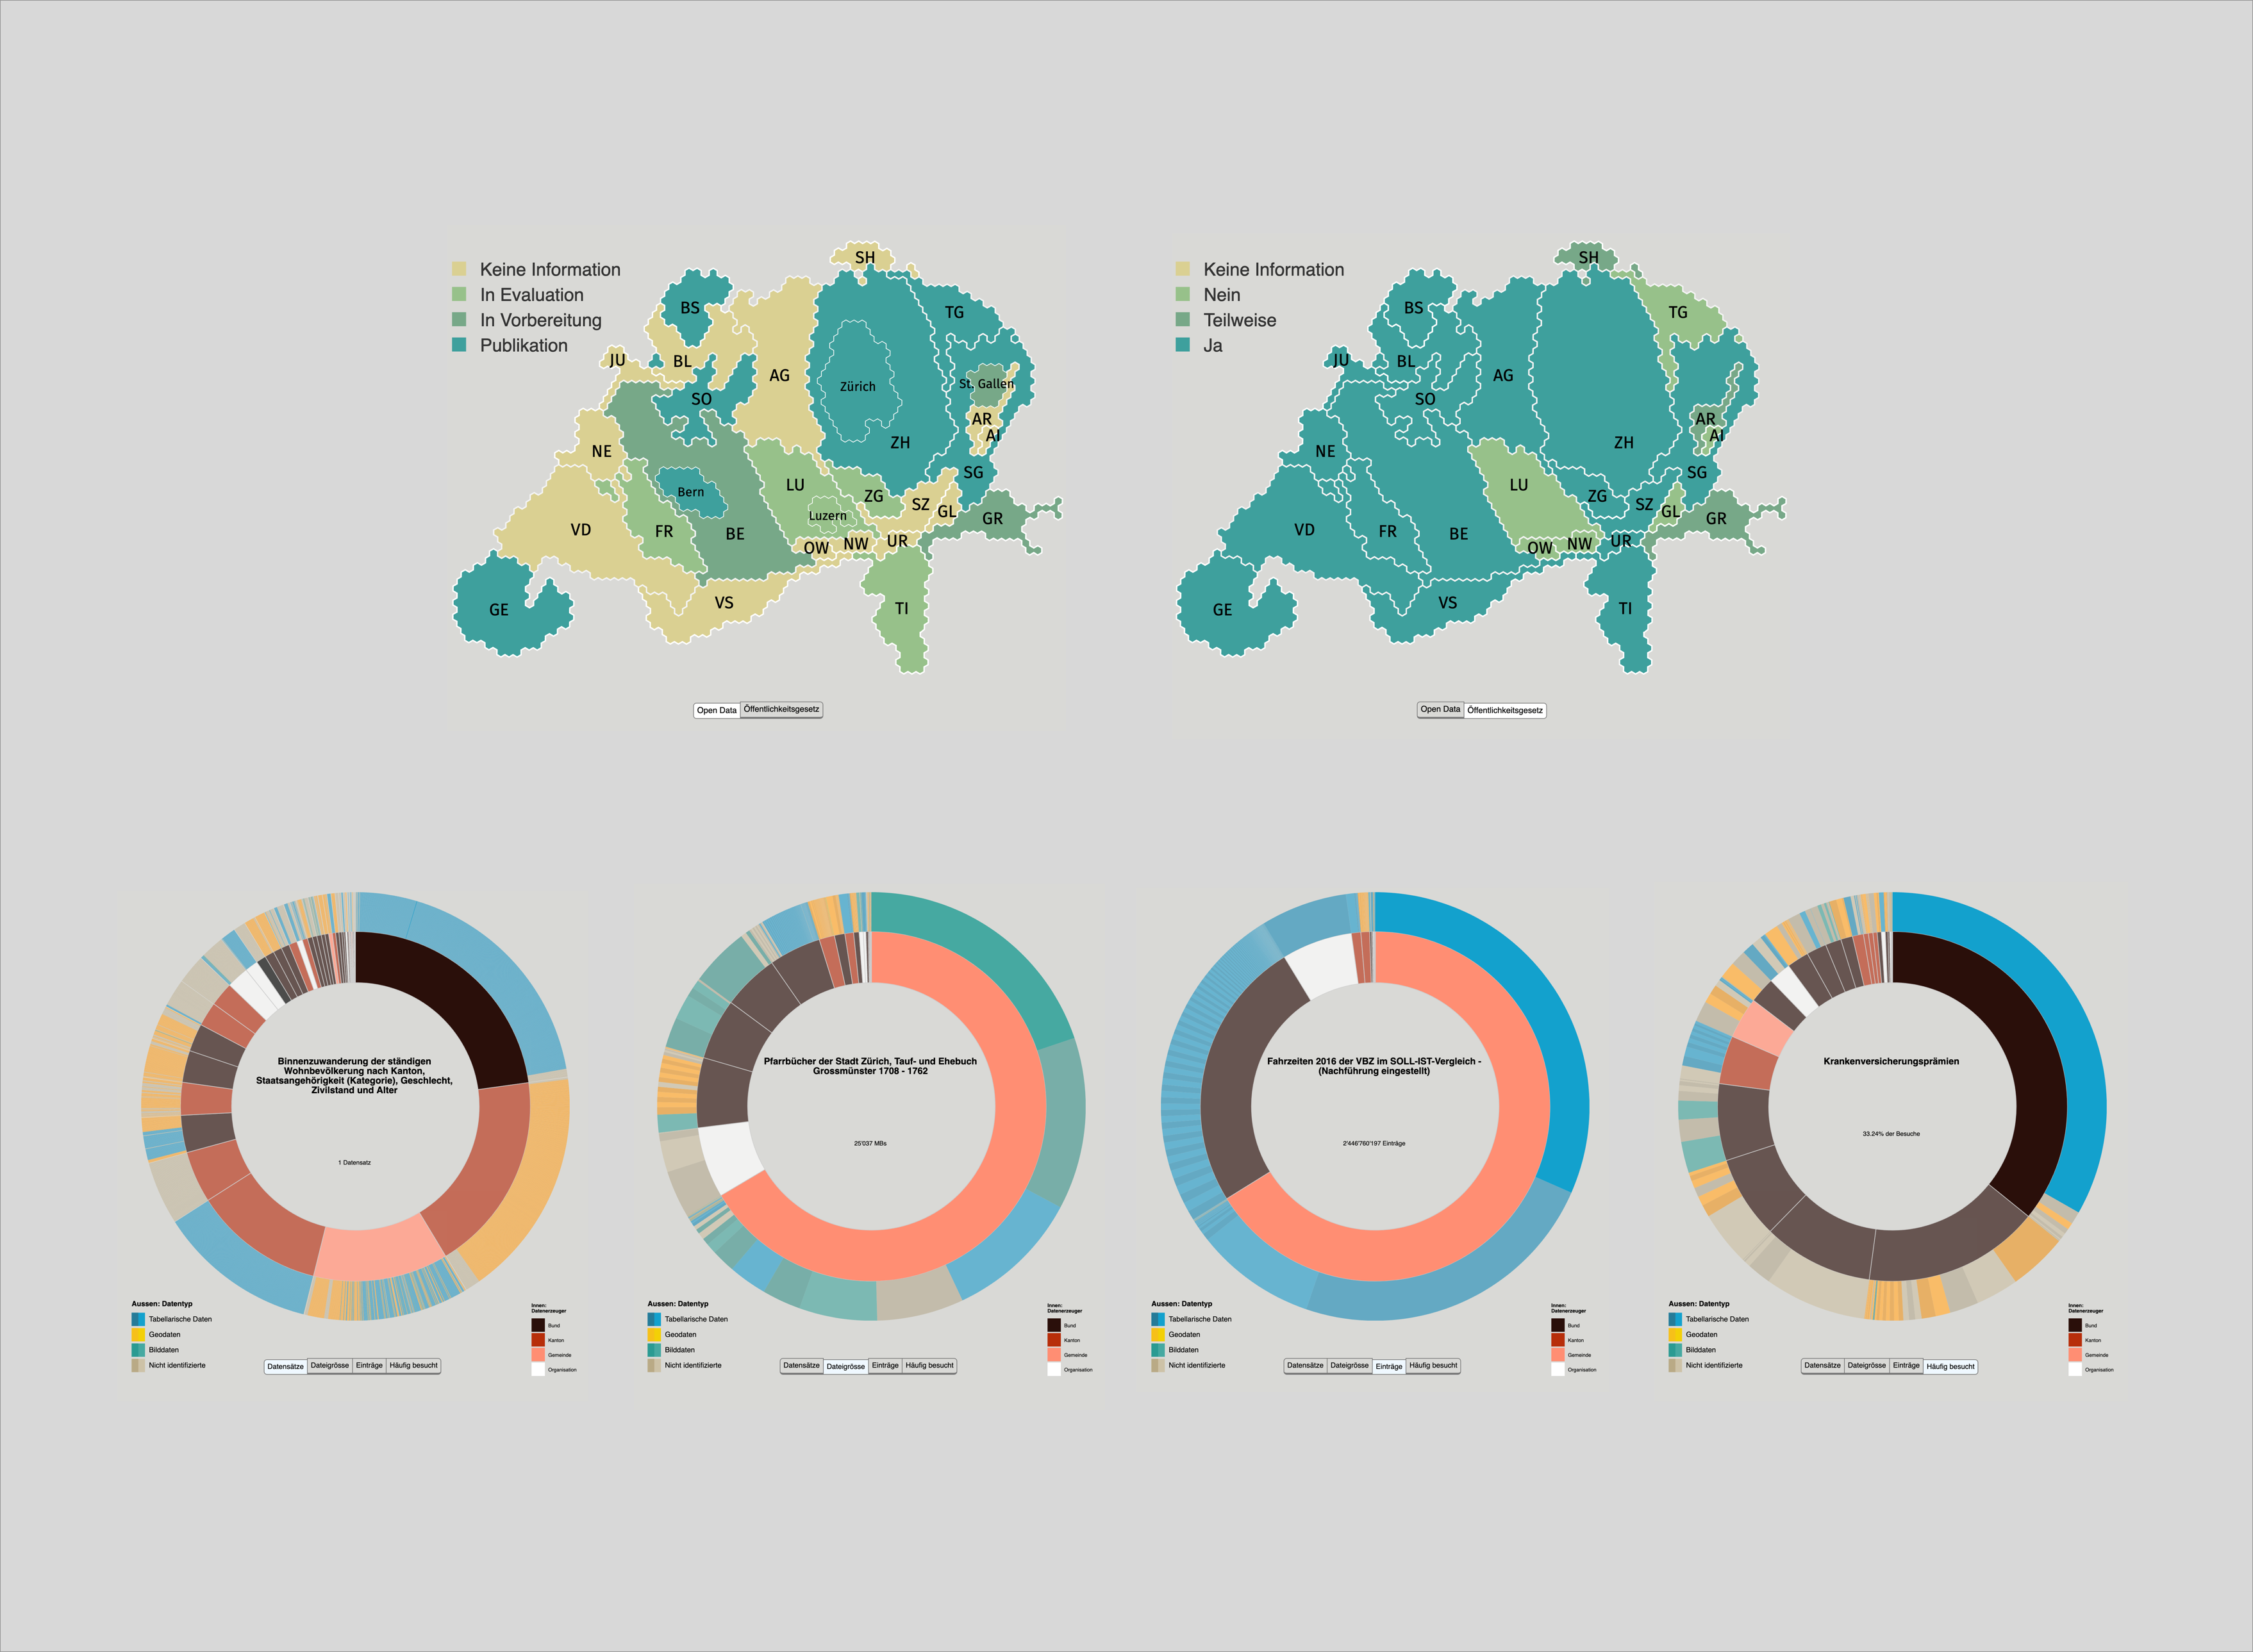 Visualizations for the article on the current state of the Open Data movement in Switzerland